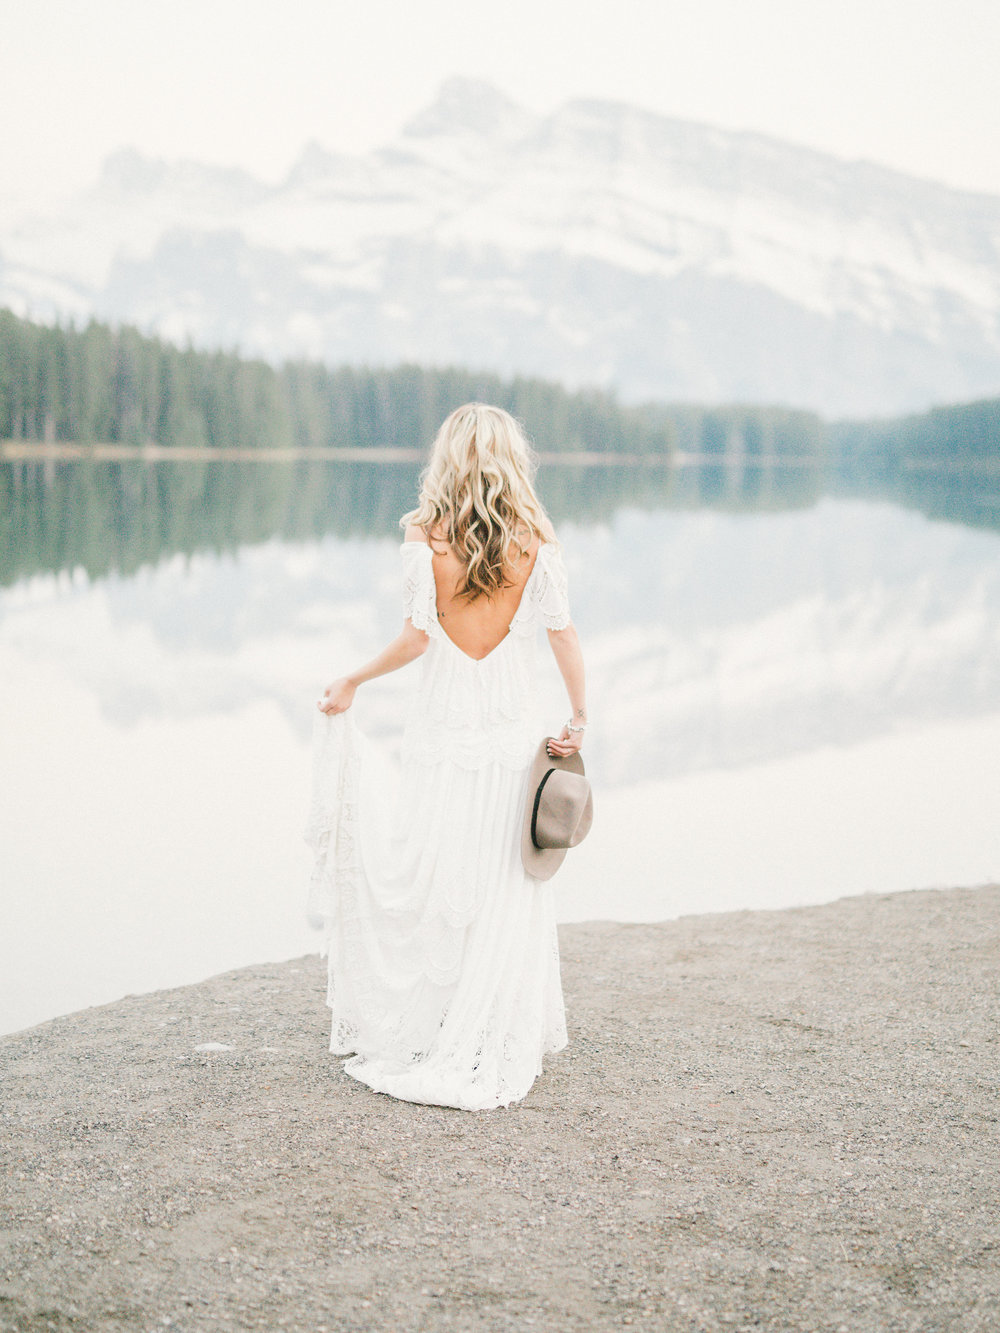 The Bridal Boutique • Rue De Seine • Julia Park Photography • Banff Wedding Inspiration